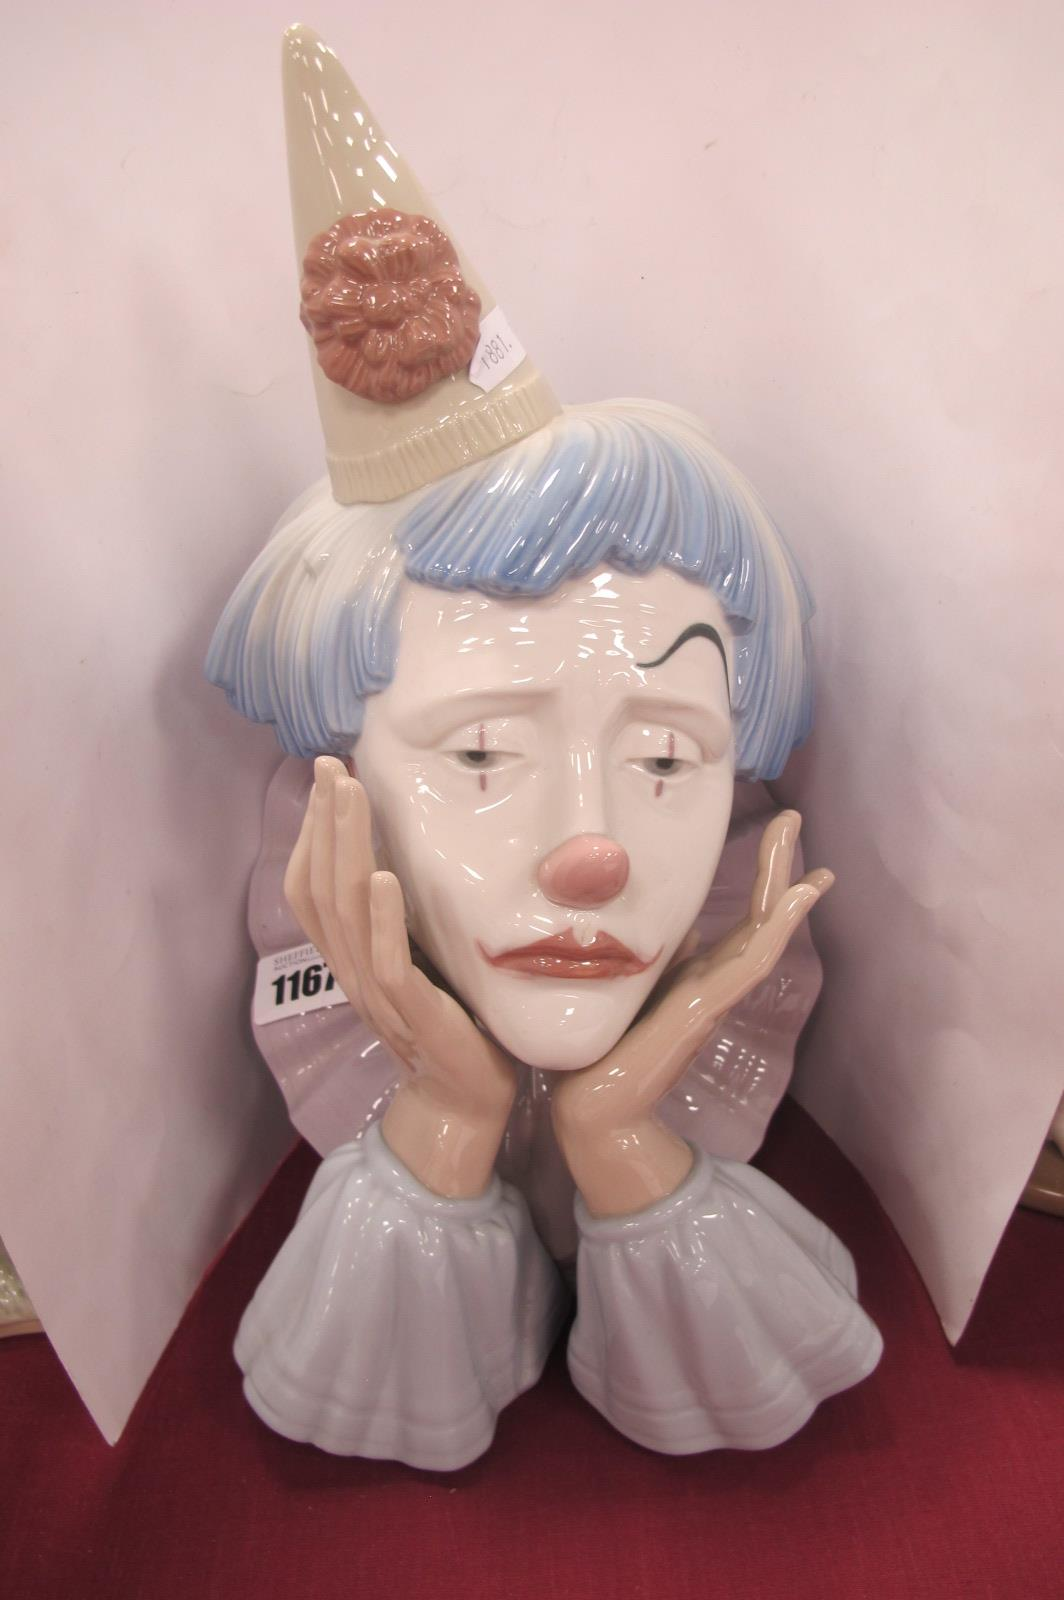 A Lladro Pottery Bust of a Sad Clown, with hands on face, stamped F-30 A, 30cm high.